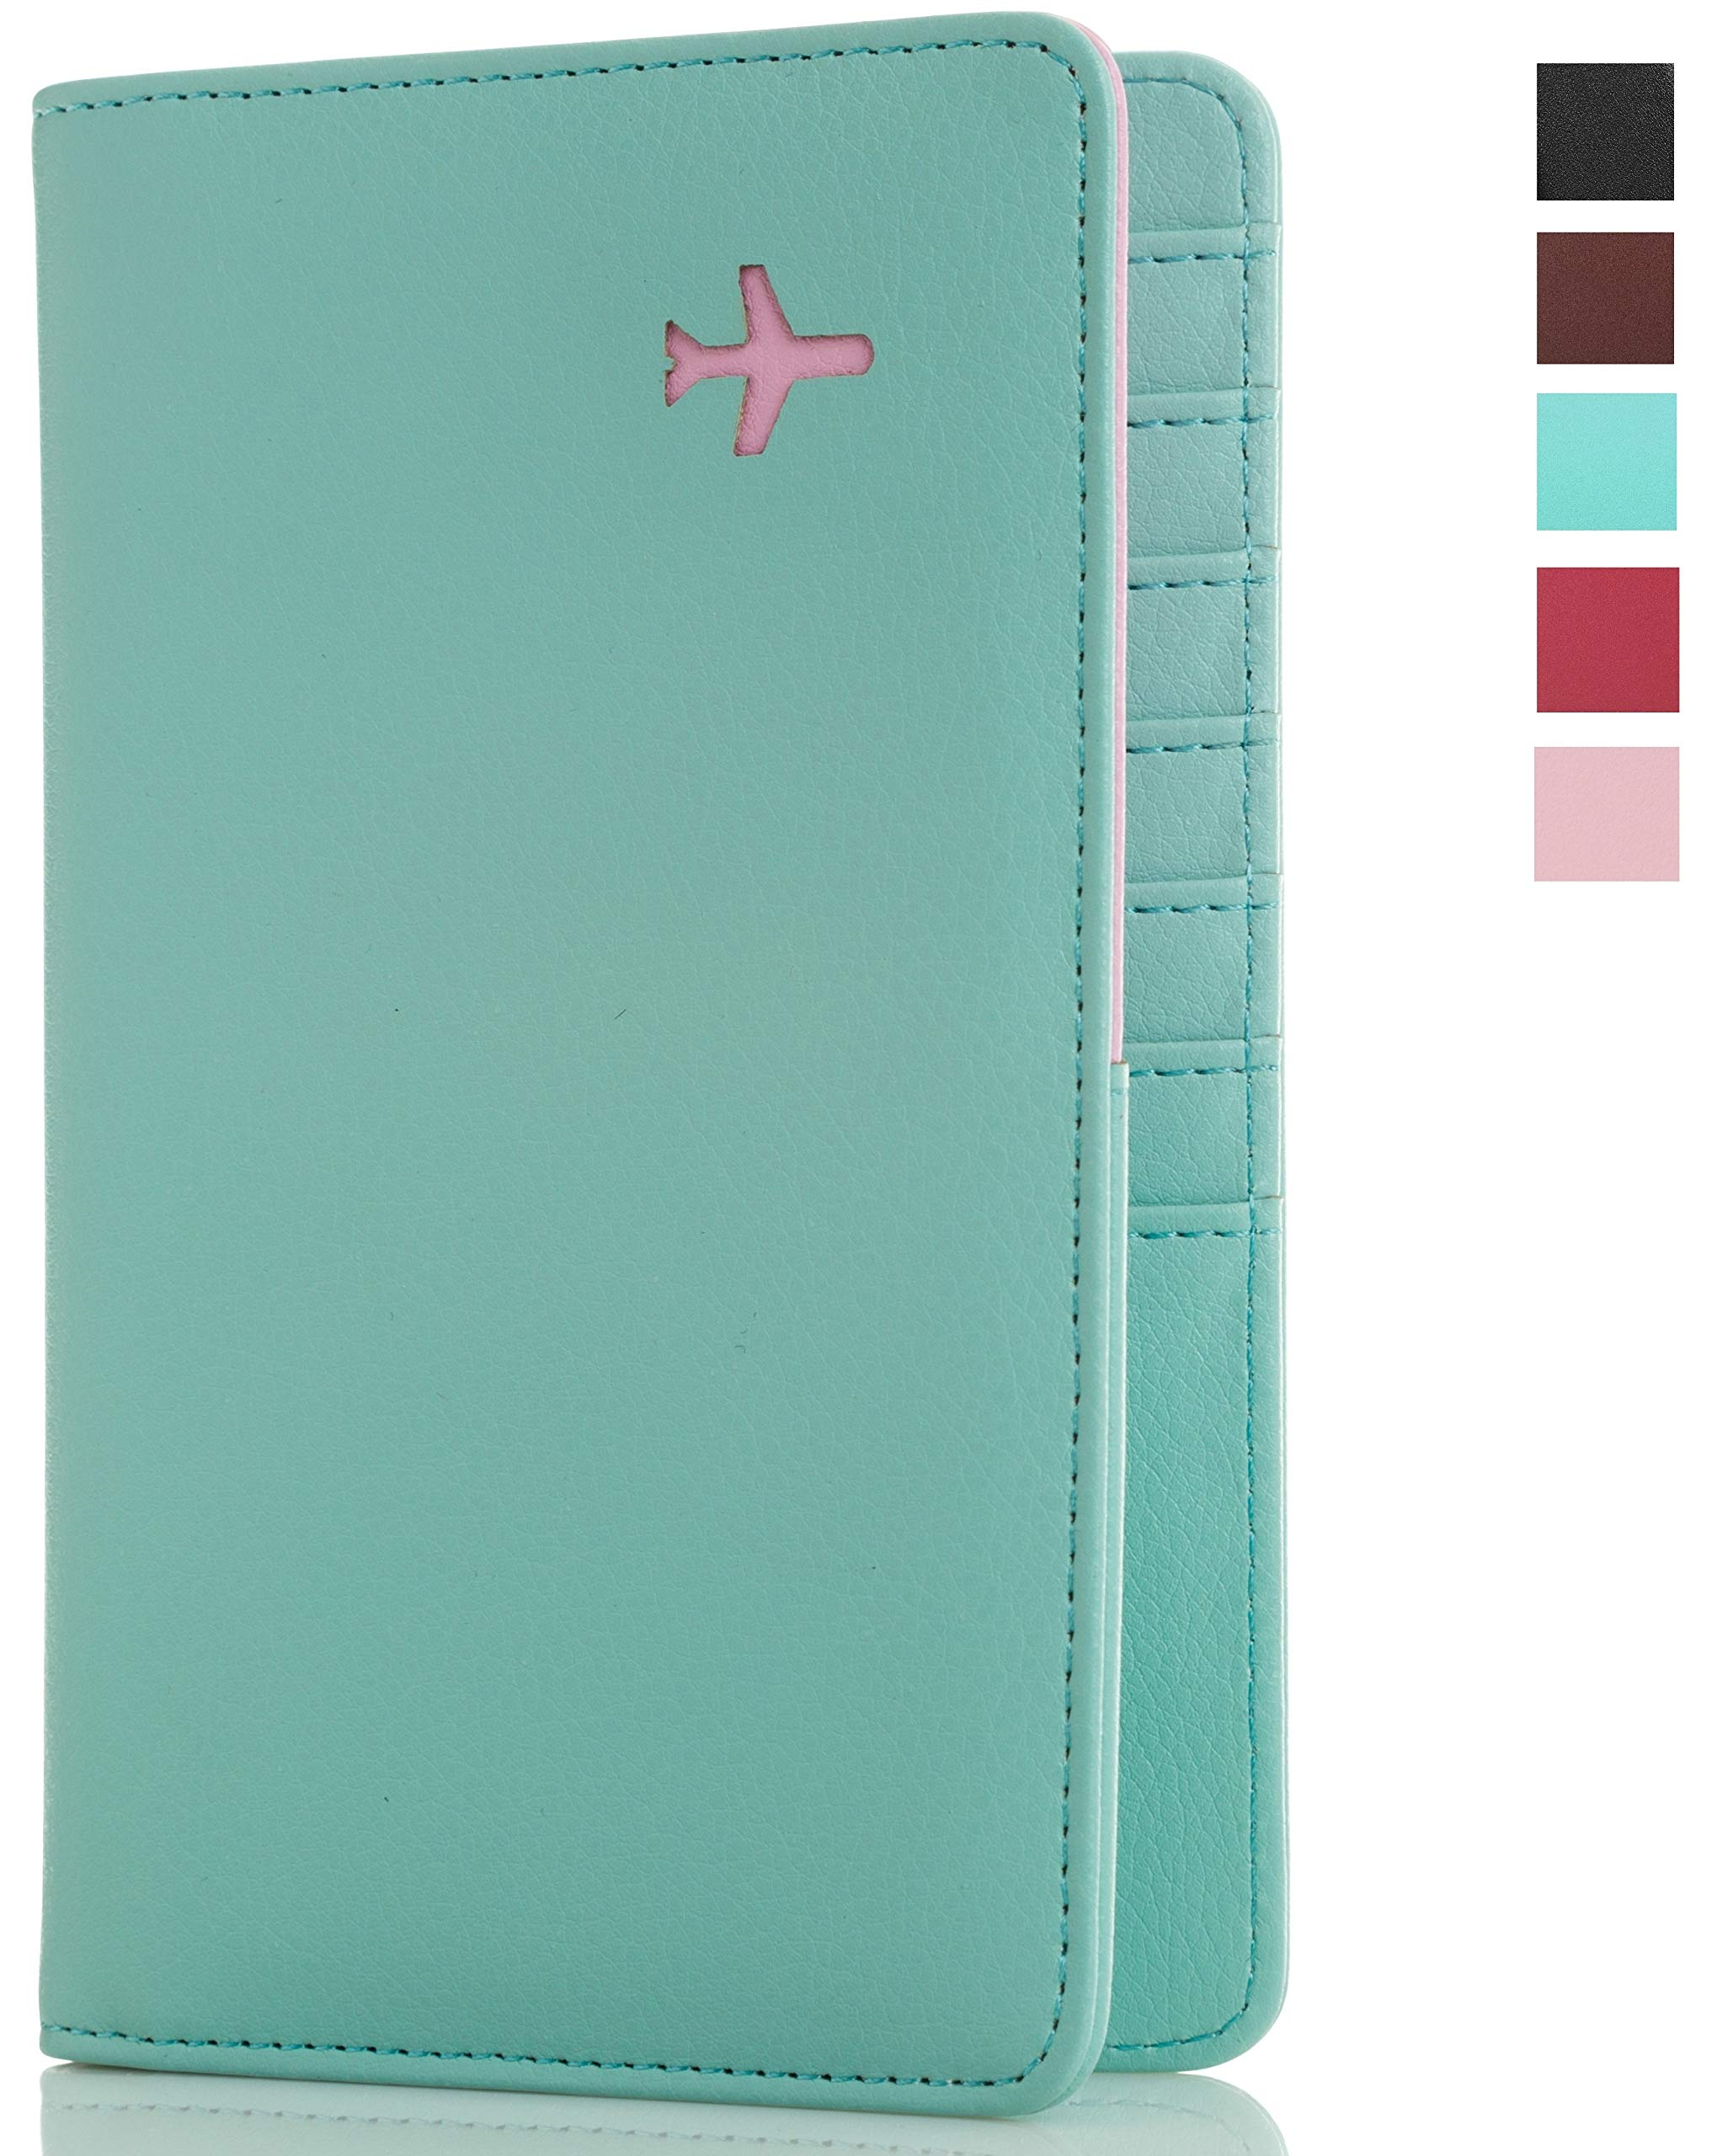 All in One Travel Wallet - 2 Passport Holder + Gift Box/cash tickets cards pen (Mint Sky)